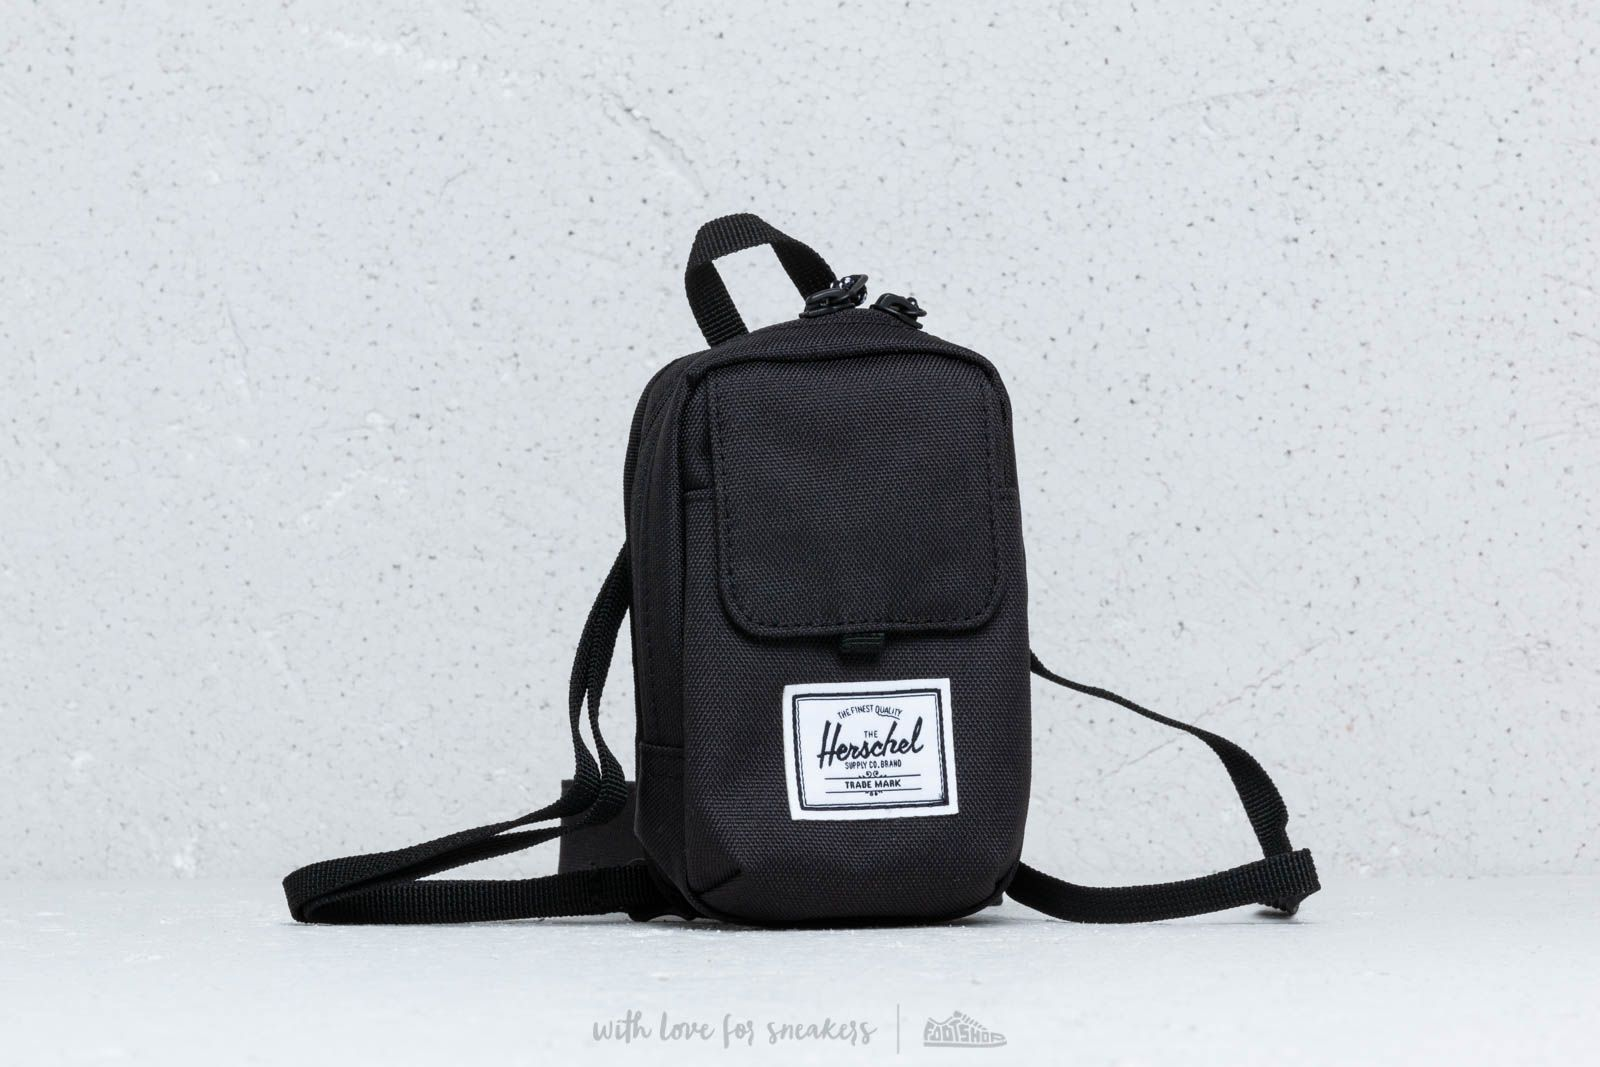 fd7619aa9005 Herschel Supply Co. Small Form Crossbody Black at a great price £34 buy at